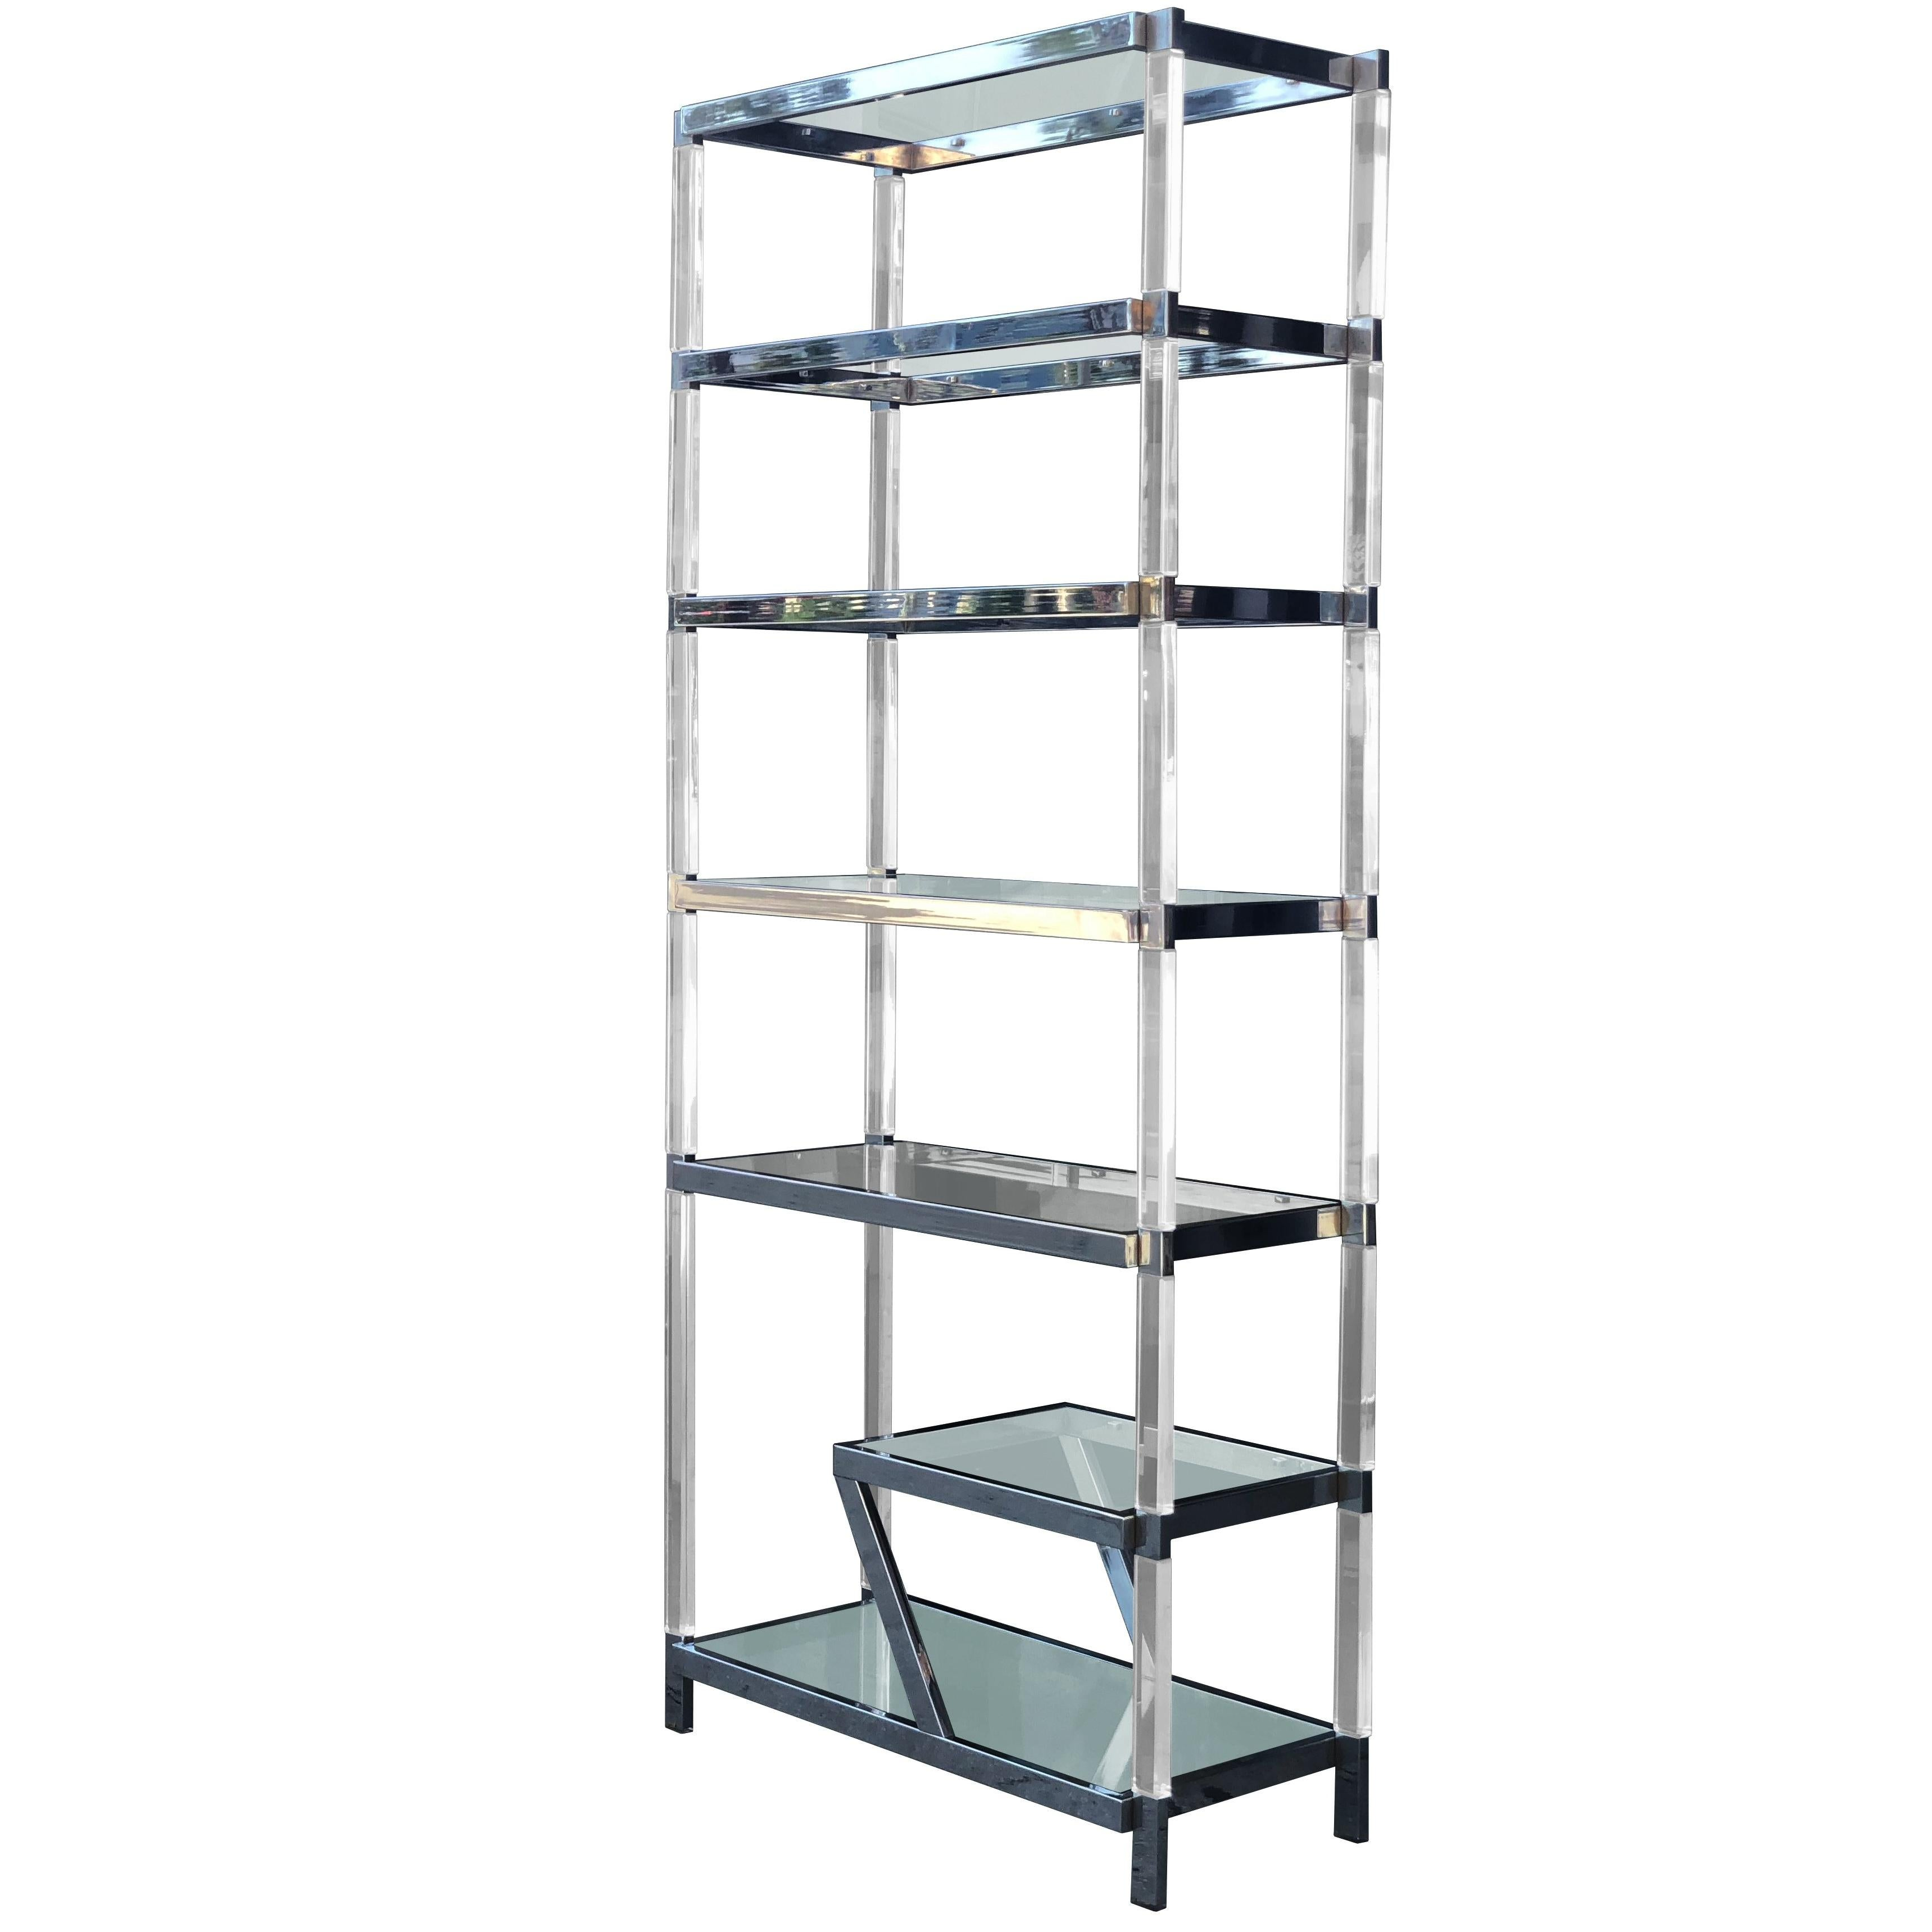 Etagere Otto 1960s Shelves 266 For Sale At 1stdibs